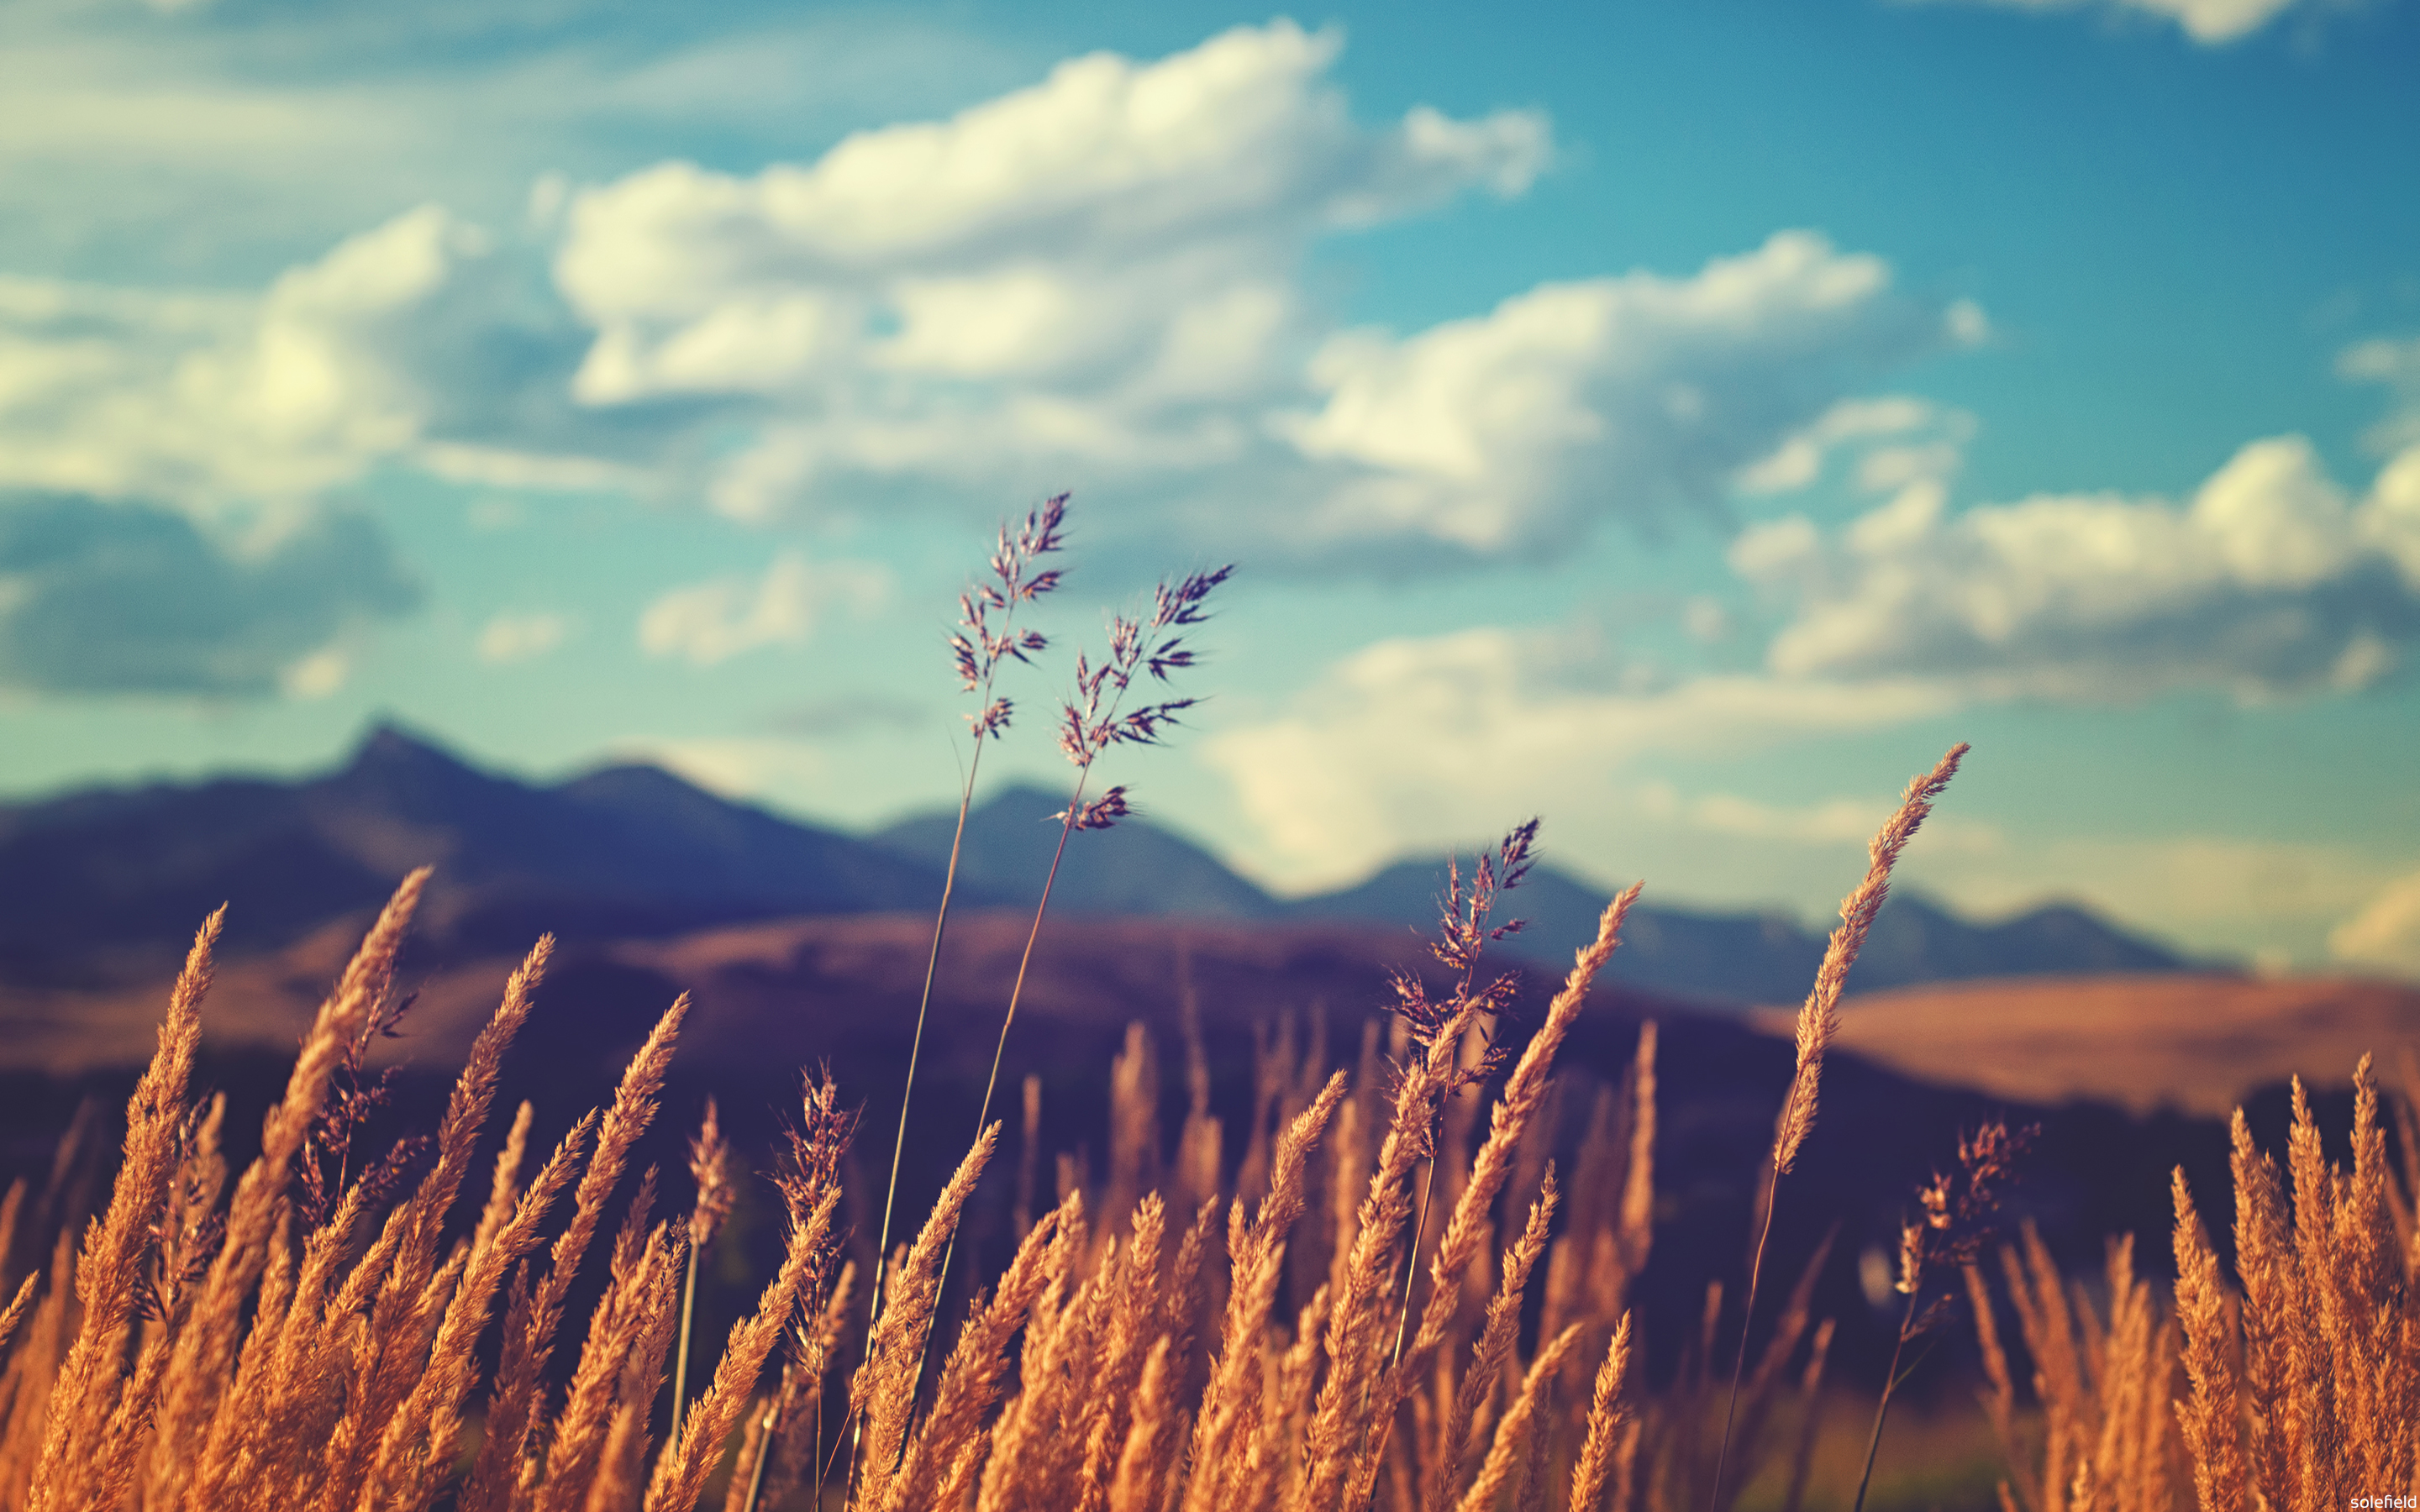 Wallpapers Of The Week: Golden Fields